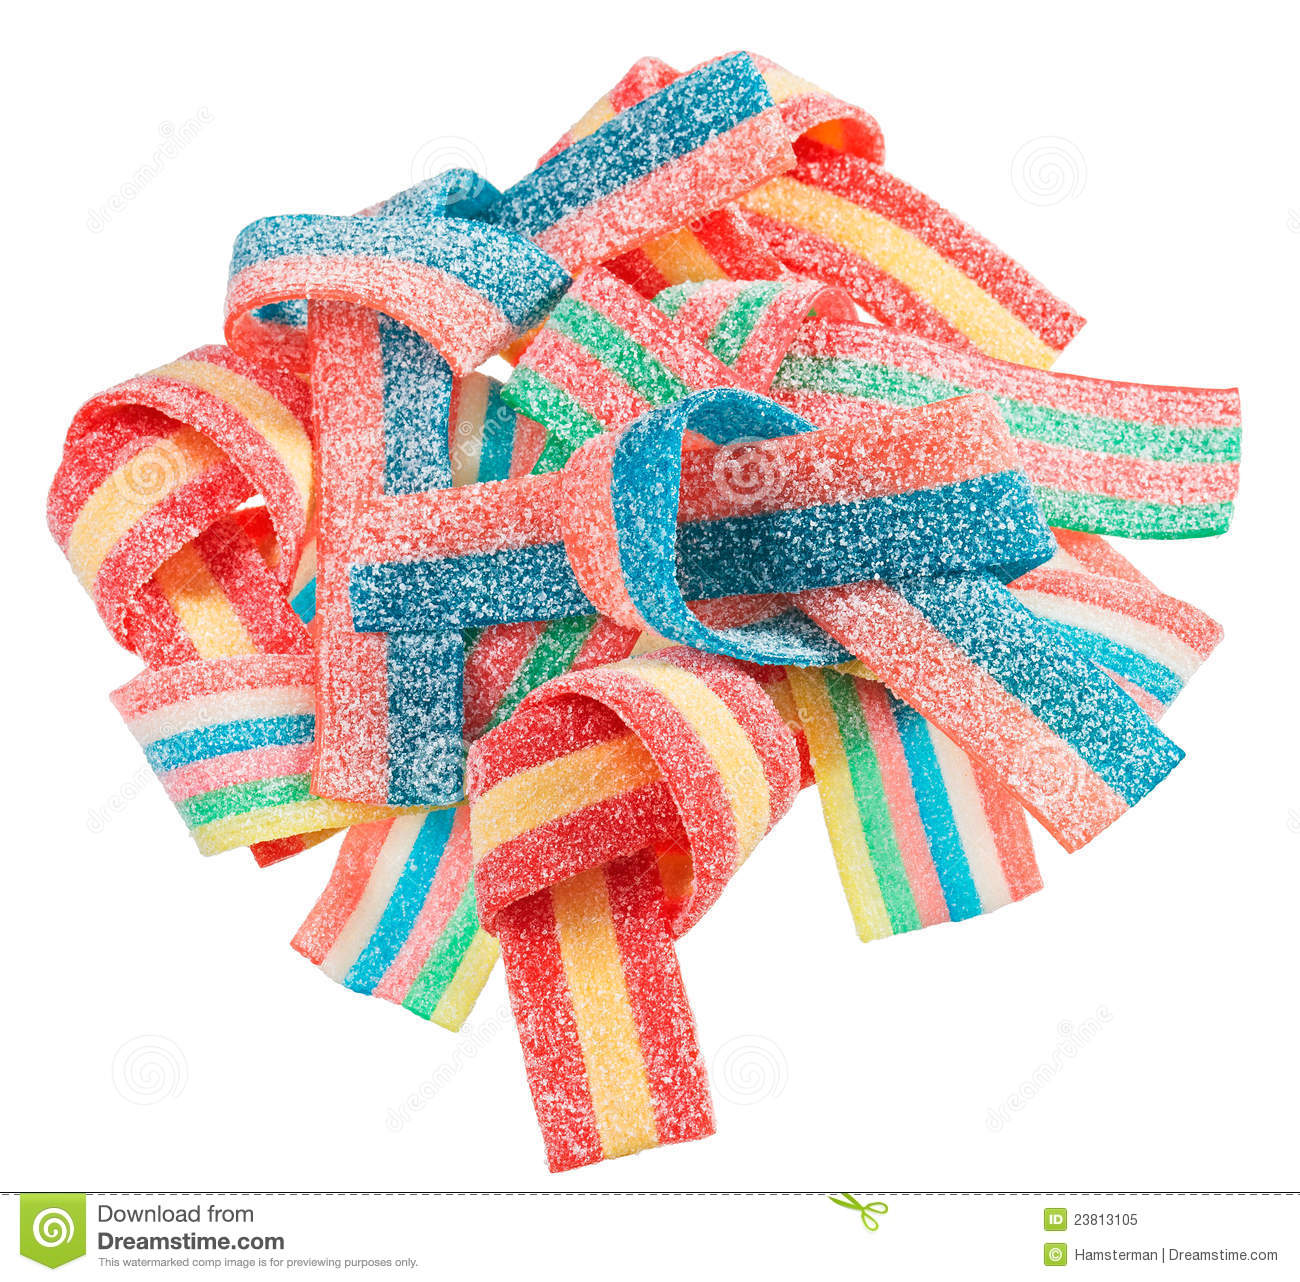 Colorful Gummy Candy Licorice Sweets Royalty Free Stock